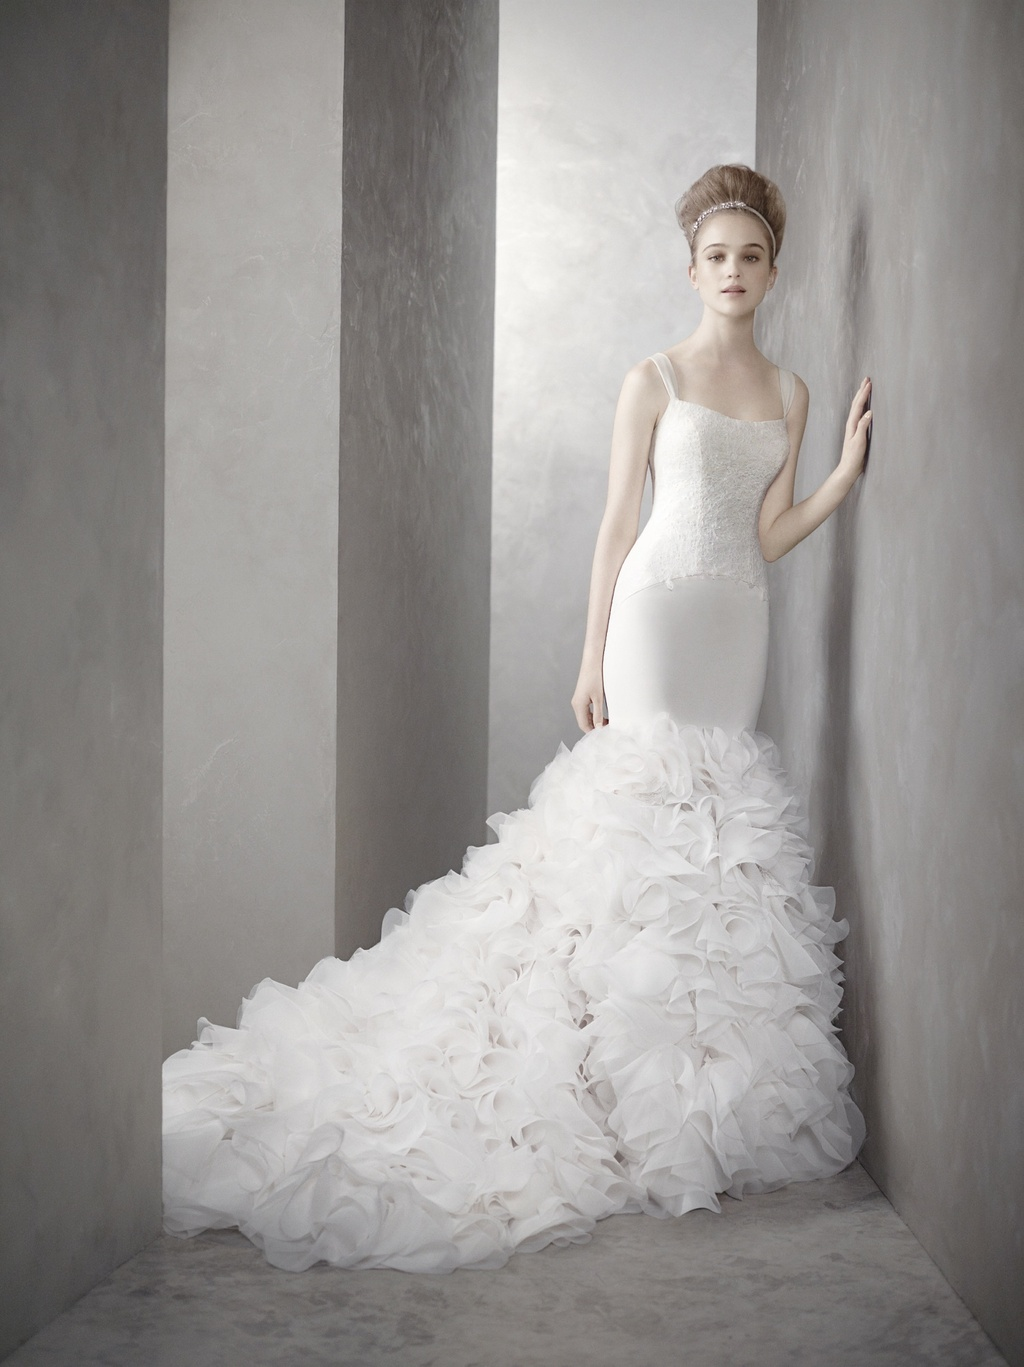 White by Vera Wang wedding dress style inspired by Kim Kardashian